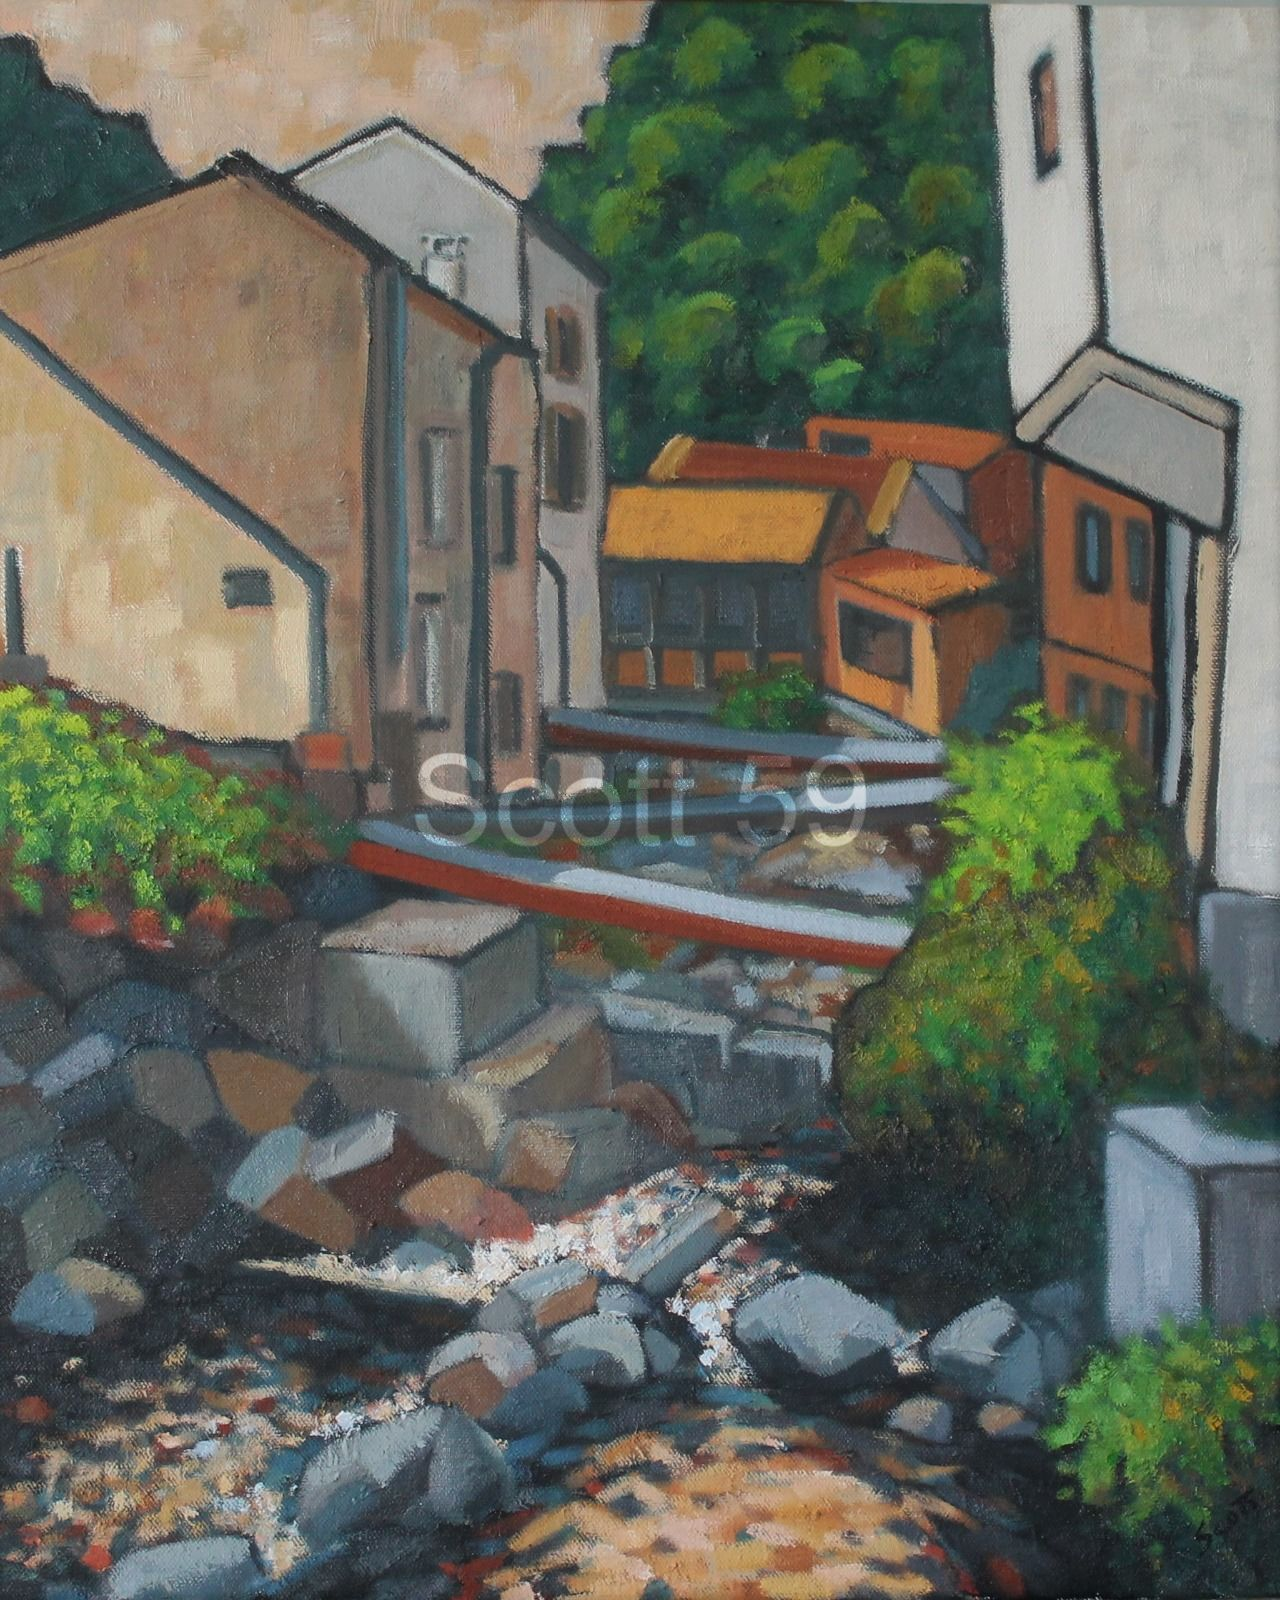 Thiers, Vallee des usines #1 (Oil on canvas 73cm x 60cm)